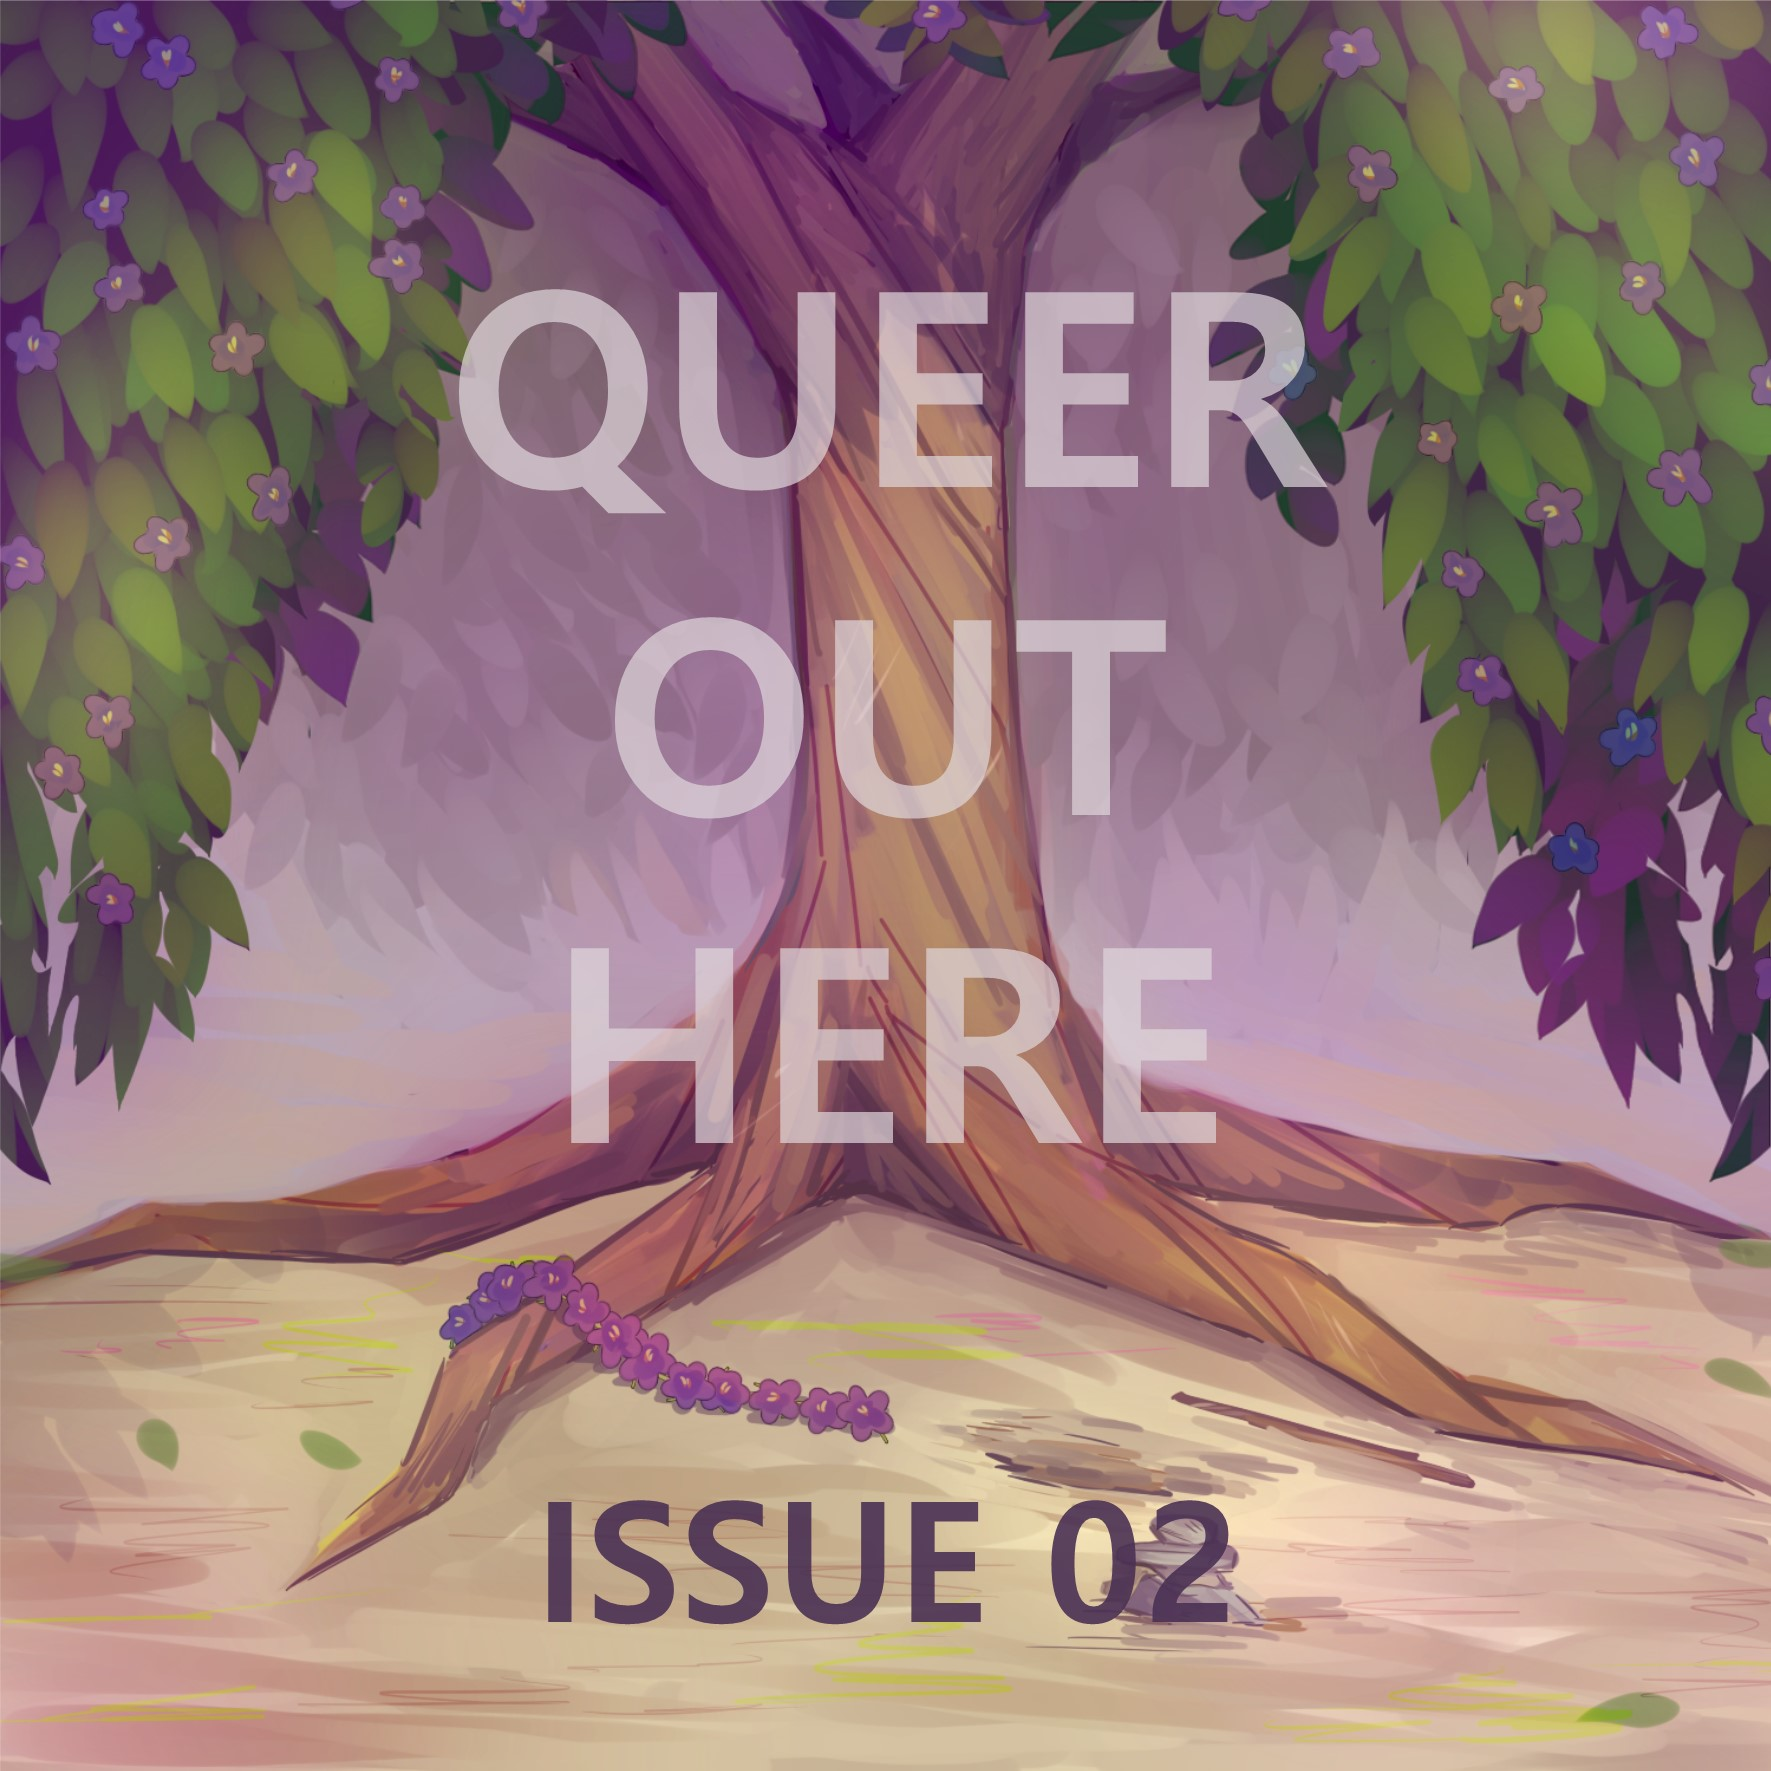 Queer Out Here Issue 02 cover by Eris Barnes